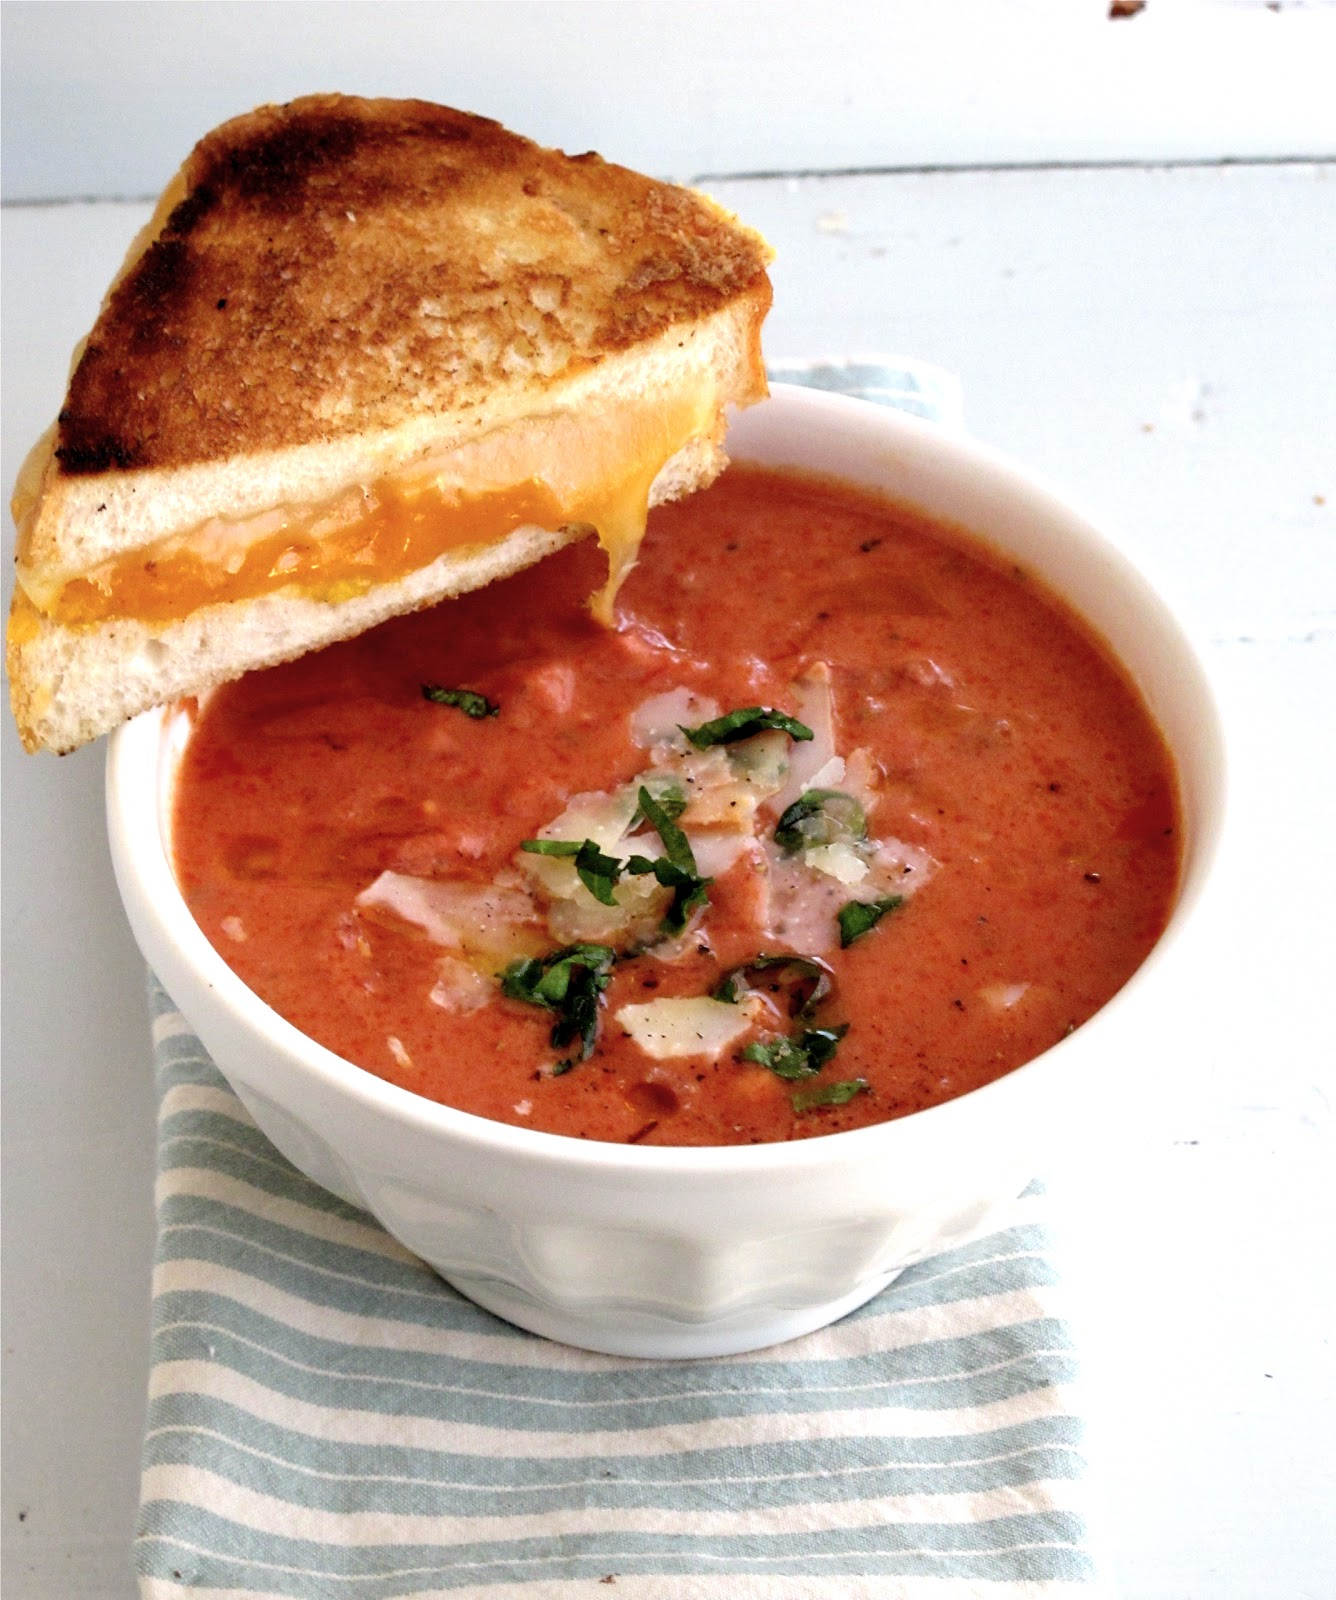 This is what I want my soup to look like from http://jennysteffens.blogspot.com/